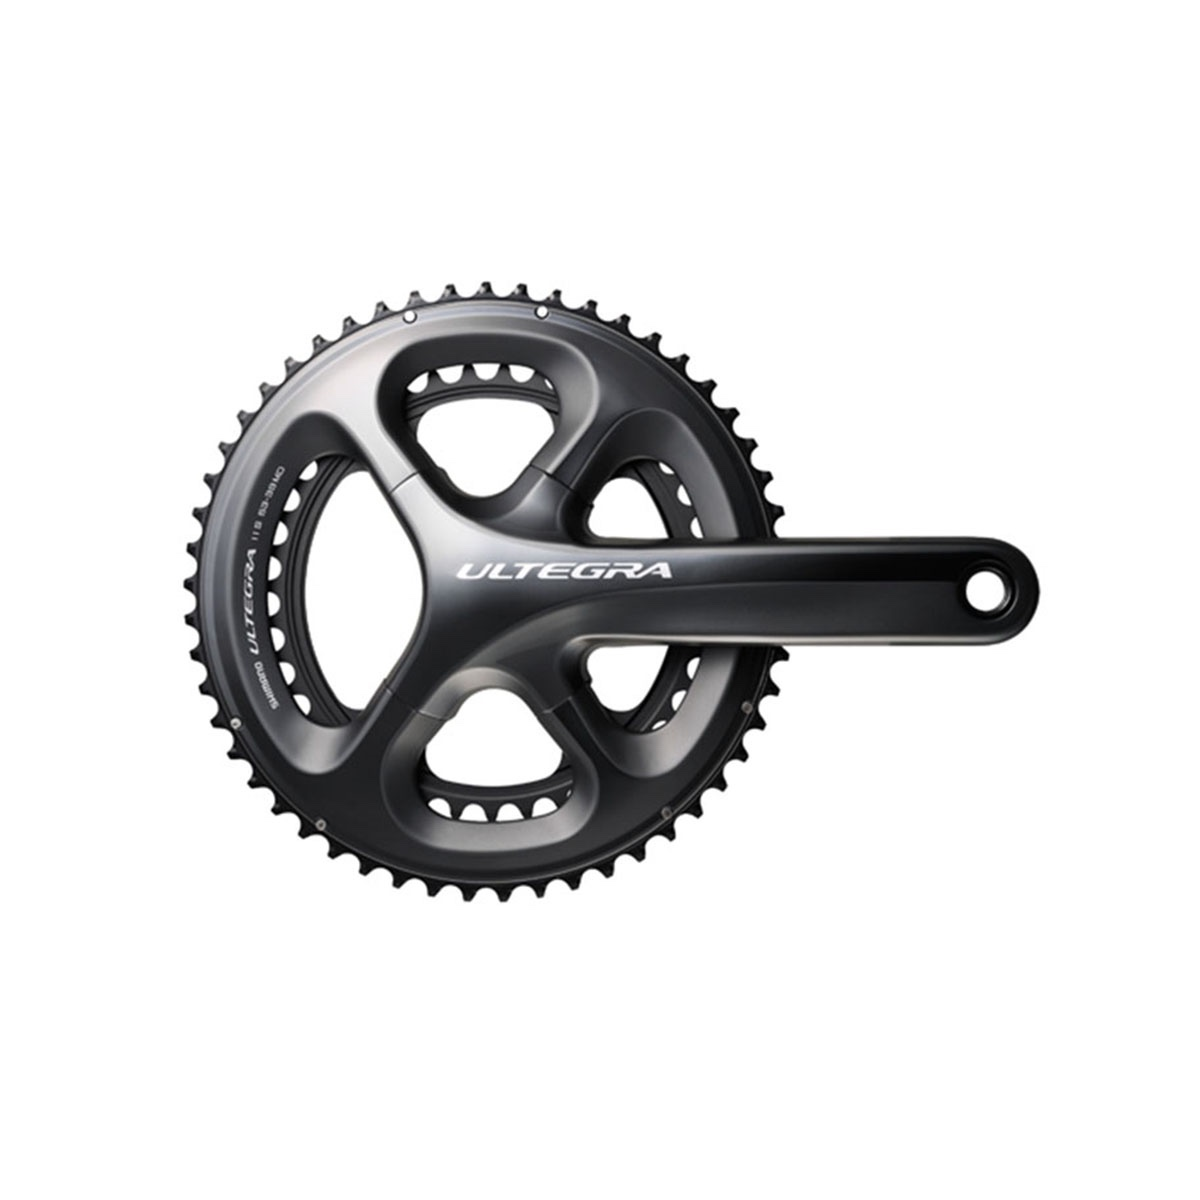 Shimano (6800) Ultegra 11 Spd Double Crankset w/o BB Parts